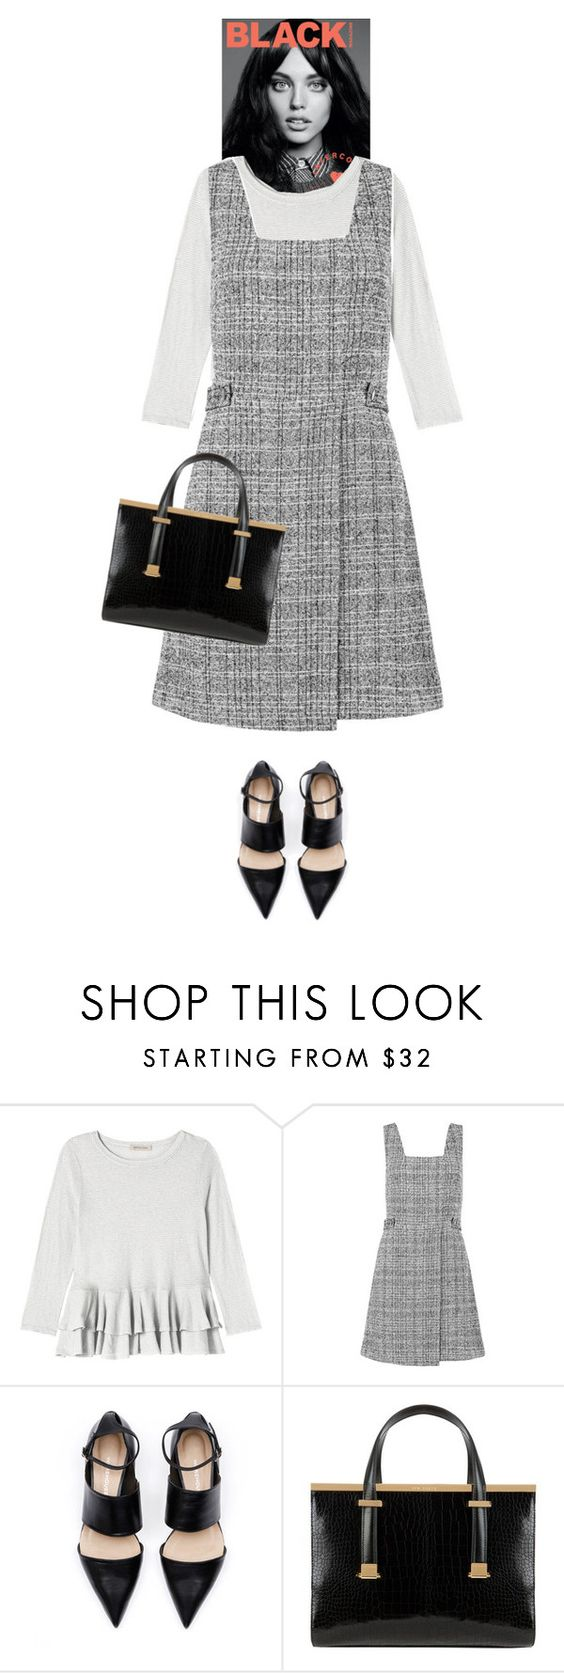 """""""Senaka #6776"""" by canlui ❤ liked on Polyvore featuring Rebecca Taylor, New Look, Ted Baker, dress, dresses, pinafores and 60secondstyle"""